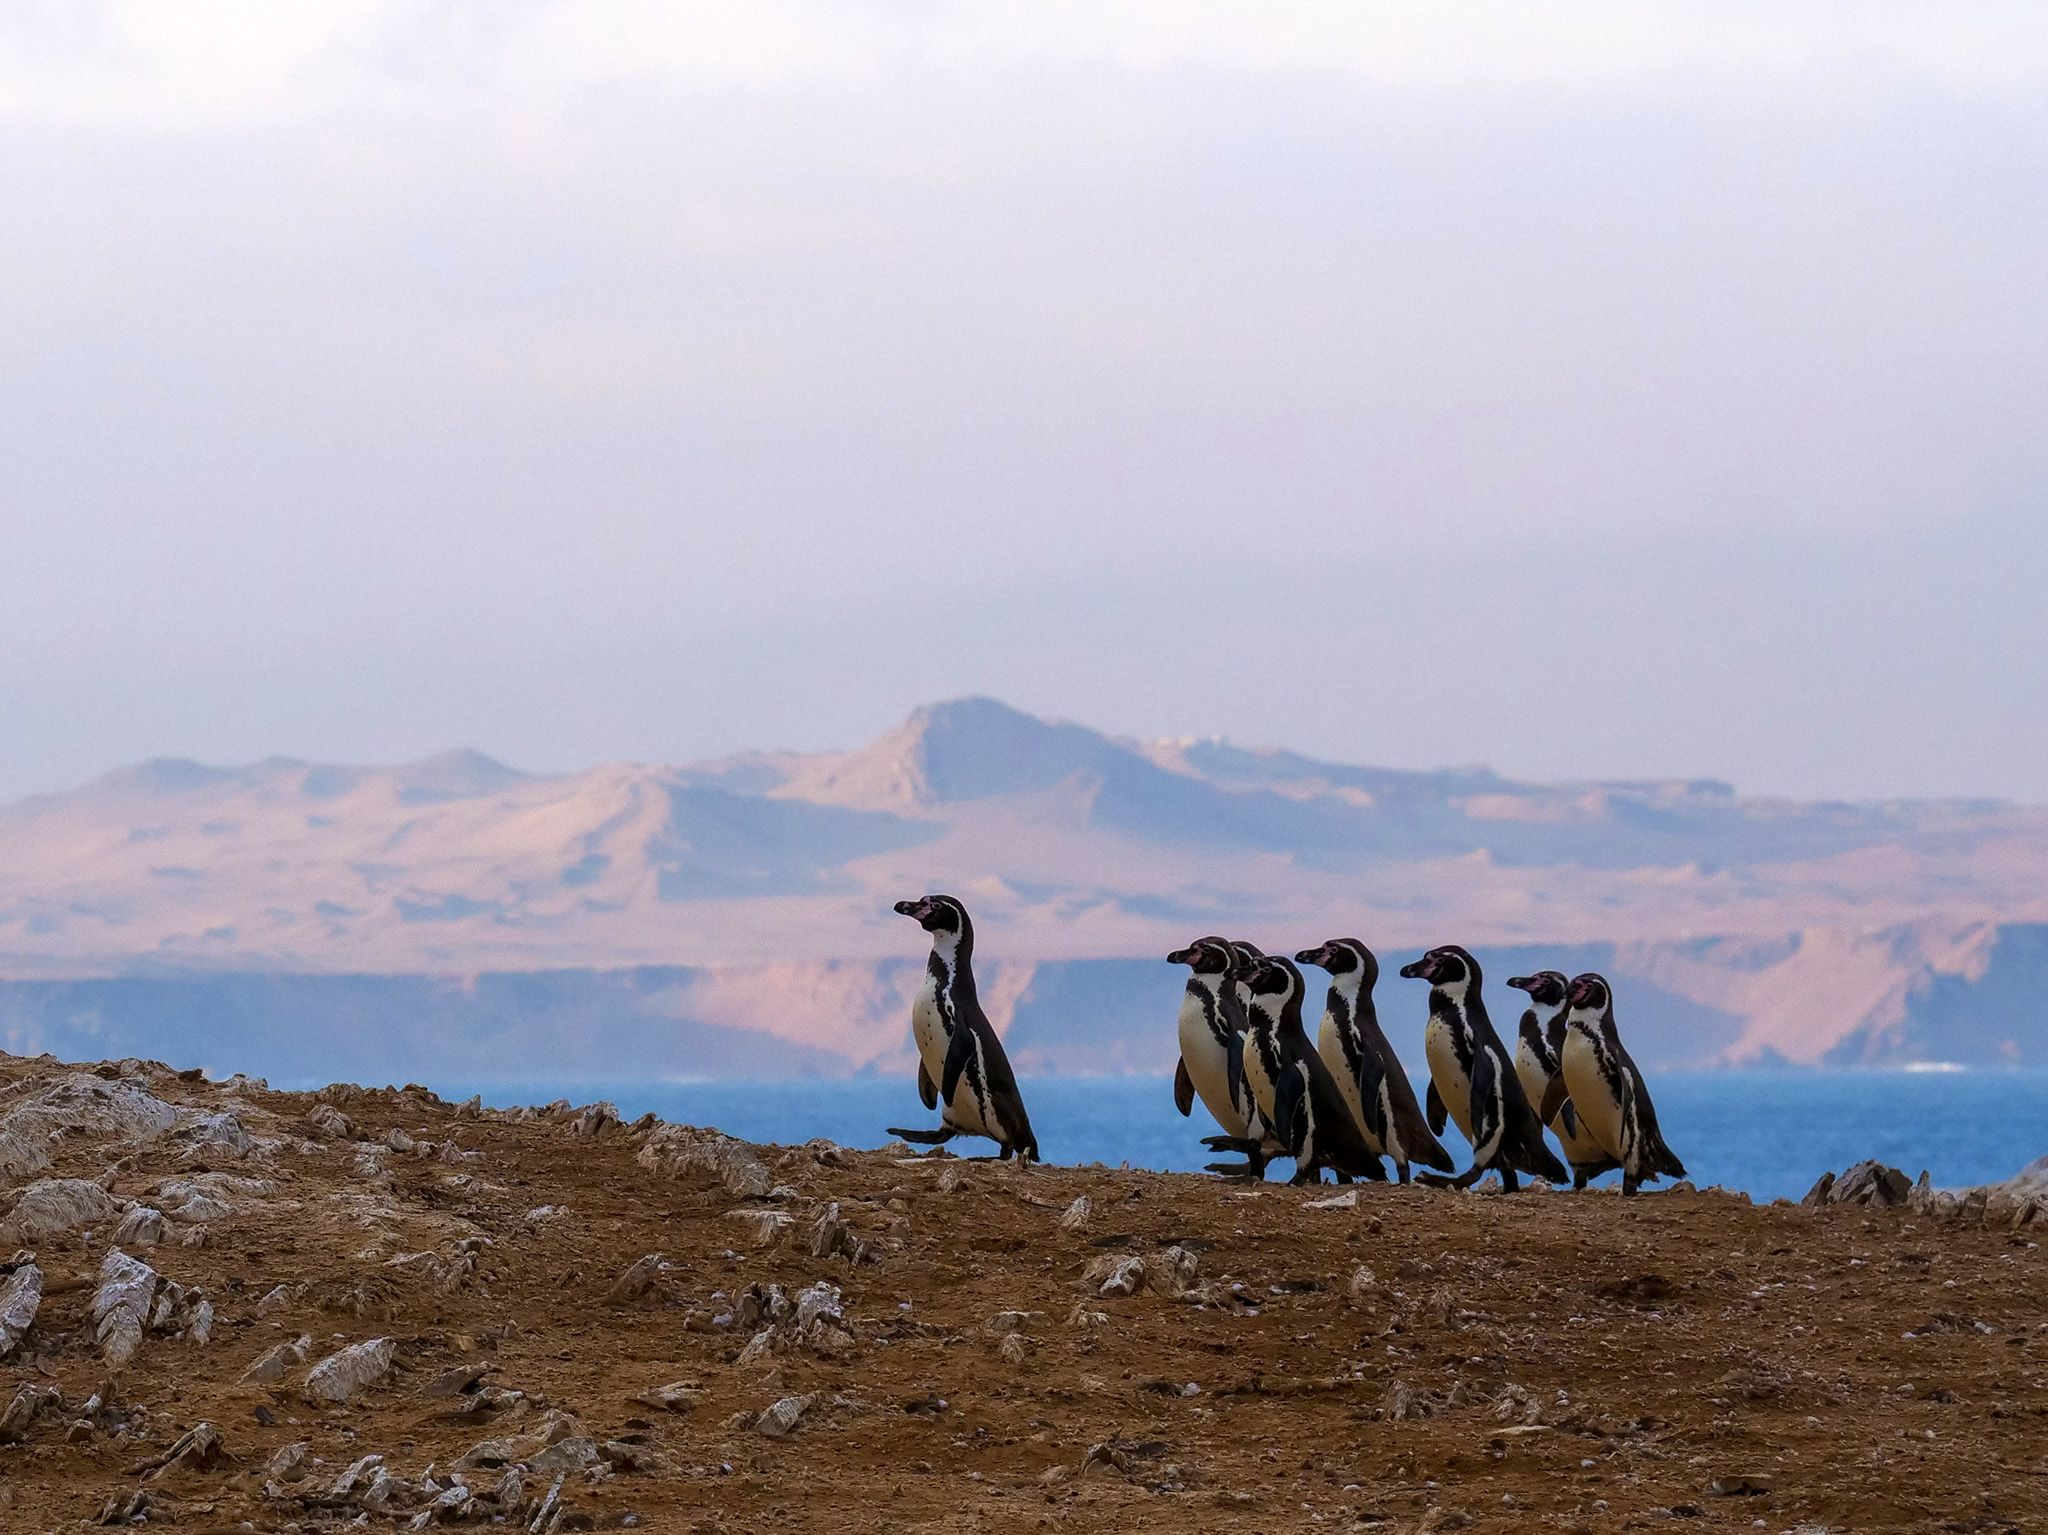 Punta San Juan, Peru:  Group of Humboldt penguins following leader across rocks. This image is... [Foto del giorno - dicembre 2018]